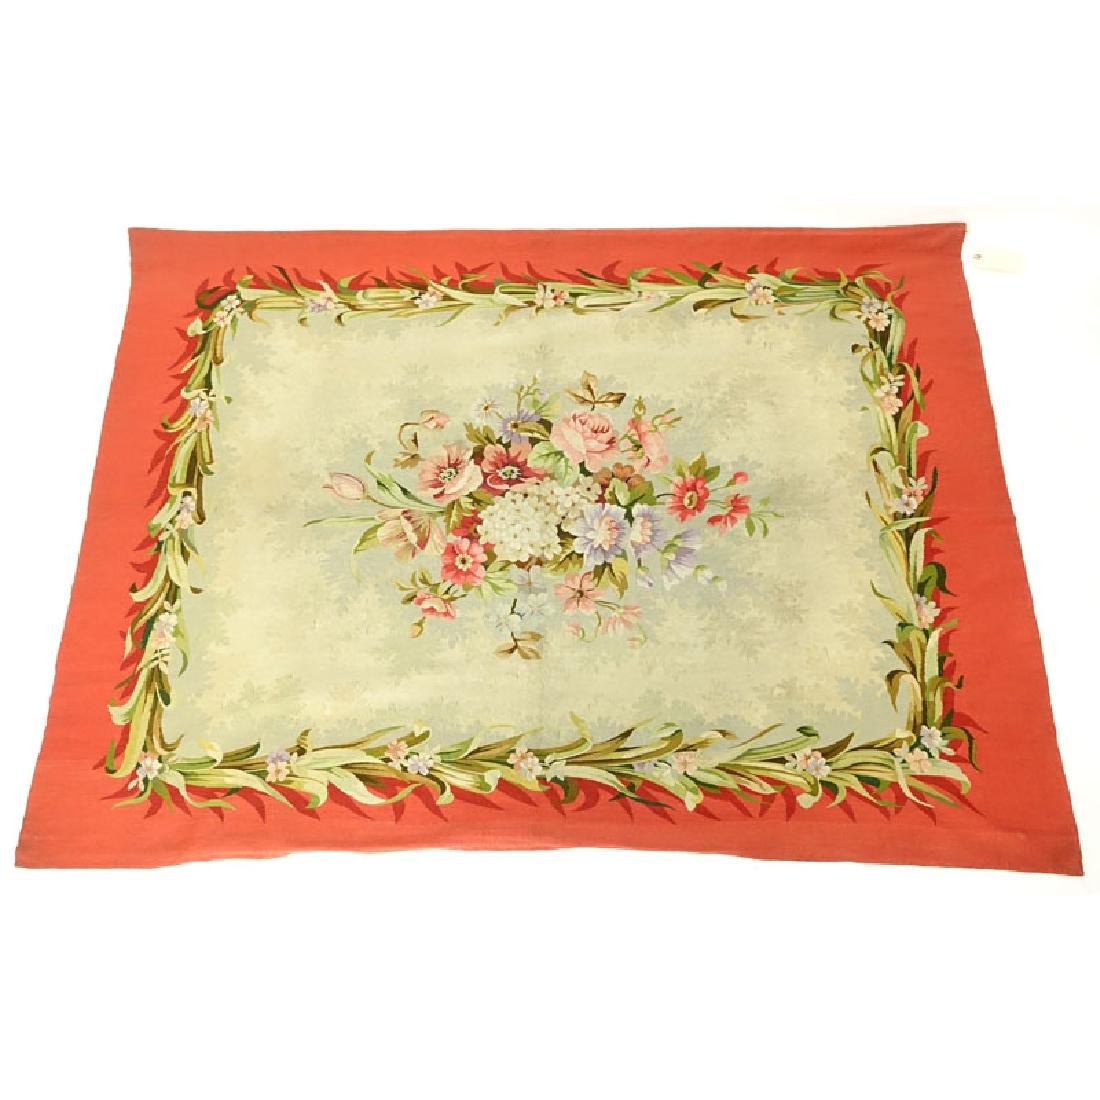 20th Century Aubusson Tapestry. Multi-colored floral